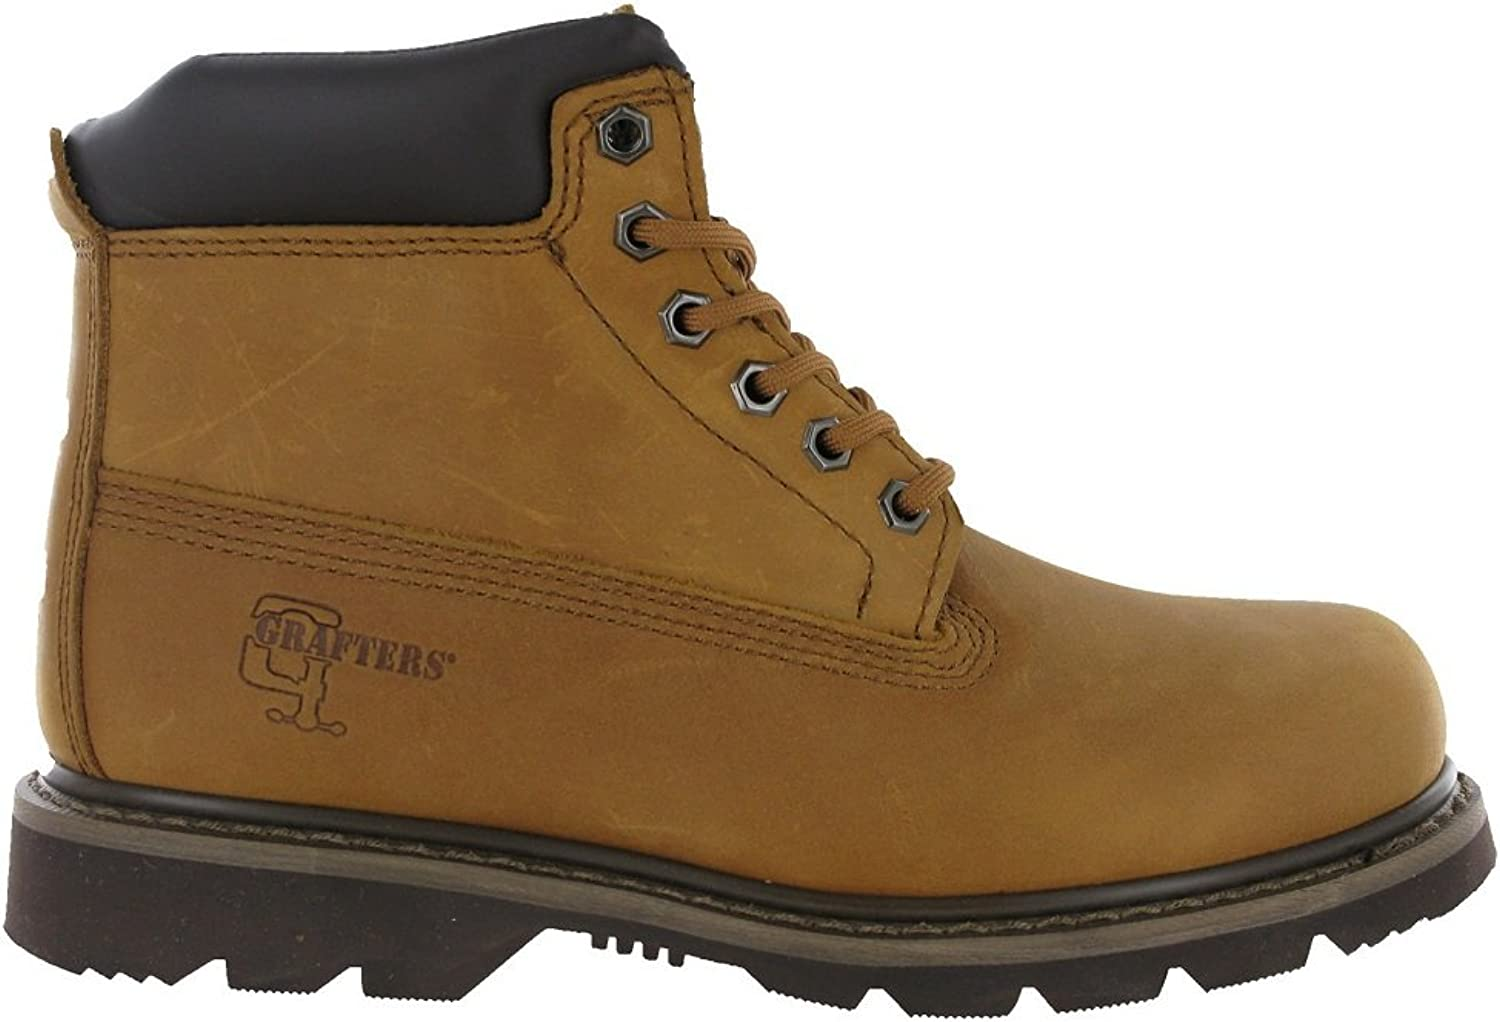 Grafters Mens 6 Eyelet Leather Welted Work Boots Brown